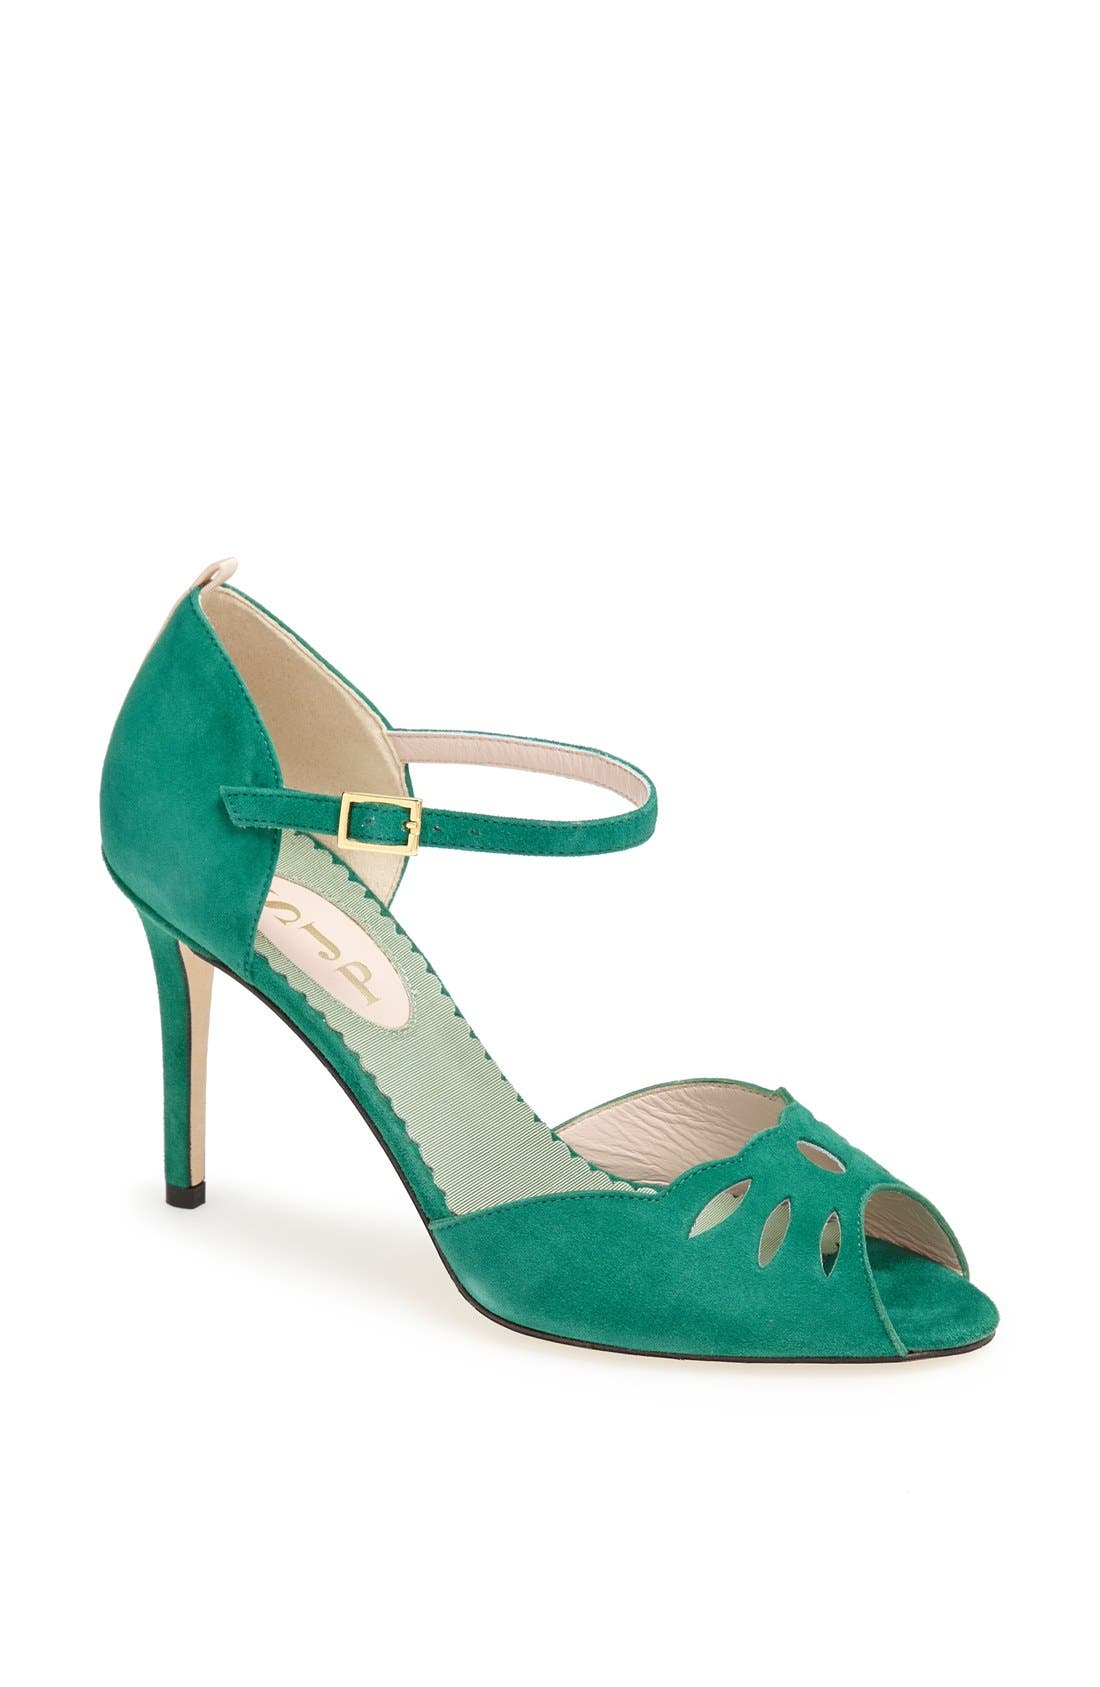 Main Image - SJP 'Ina' Pump (Nordstrom Exclusive)